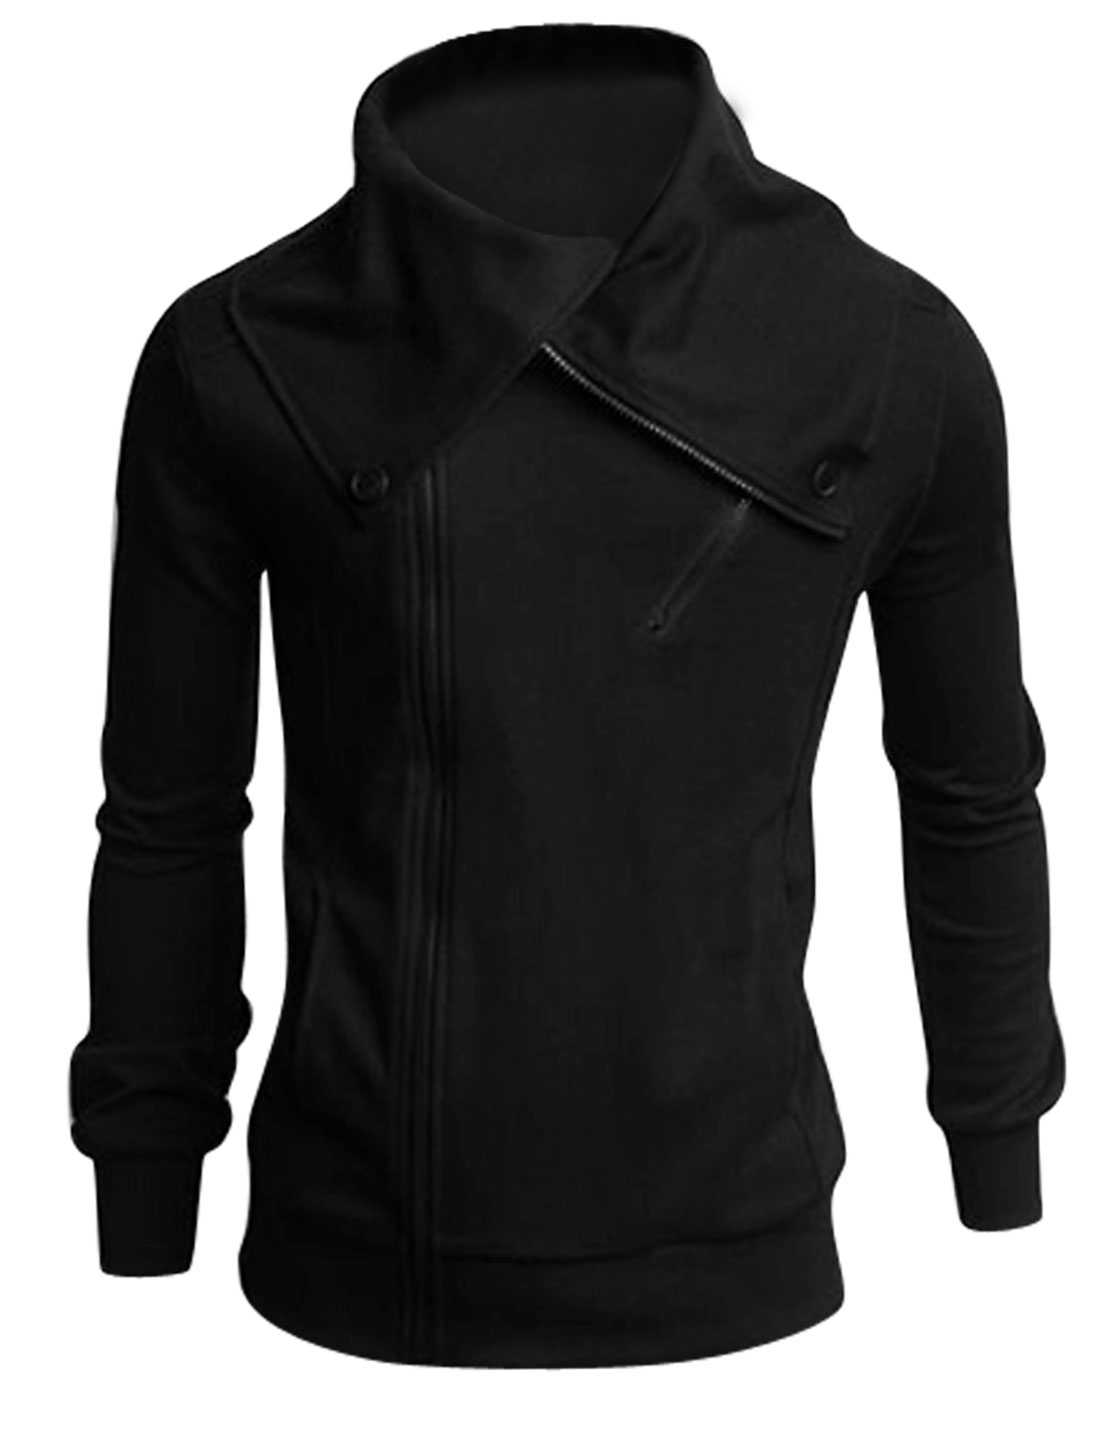 Turn Down Collar Zip Closed Casual Jacket for Men Black M